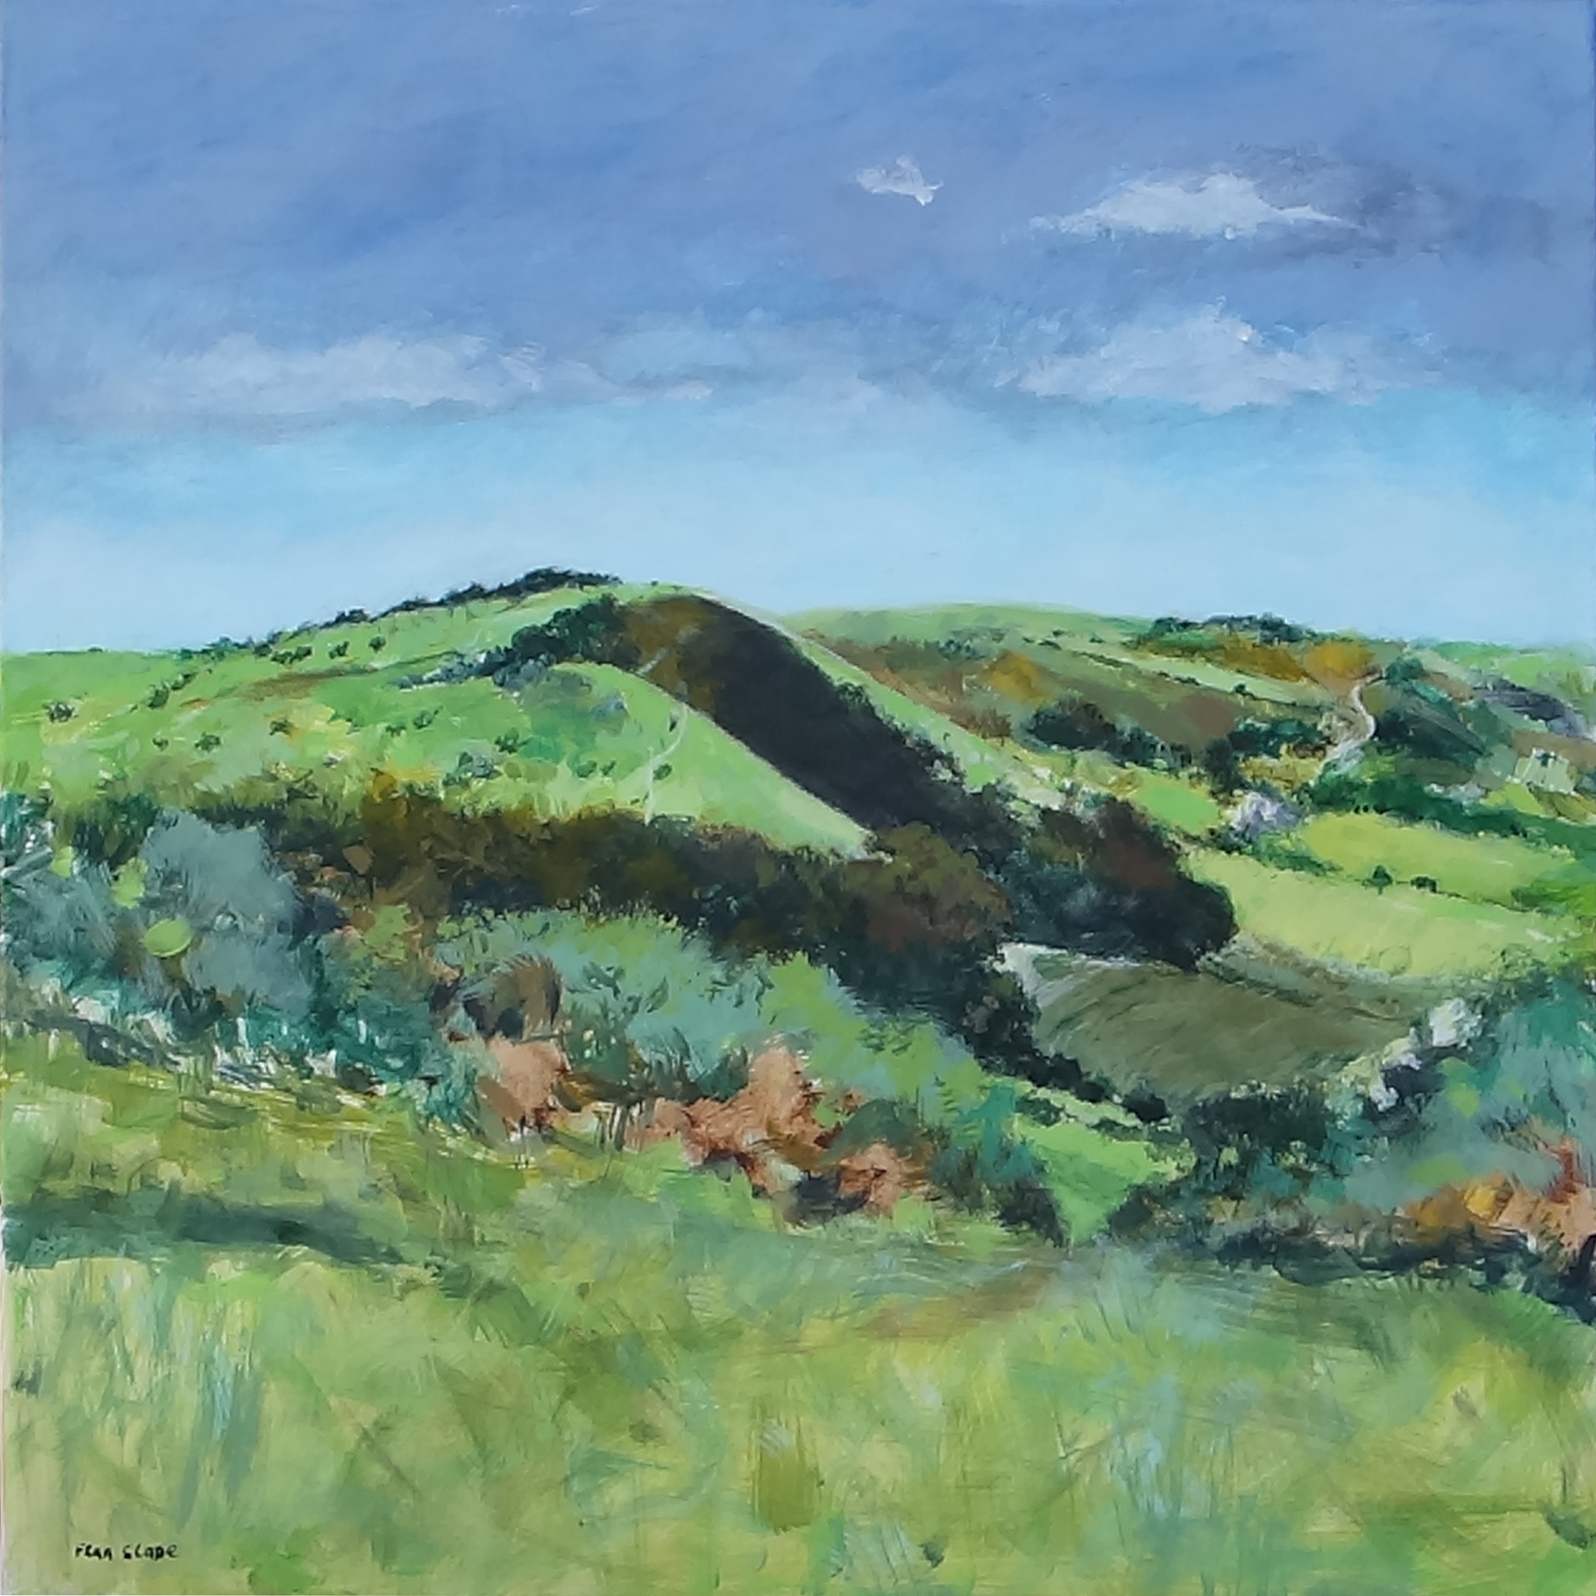 SCARP SLOPE by Fran Slade